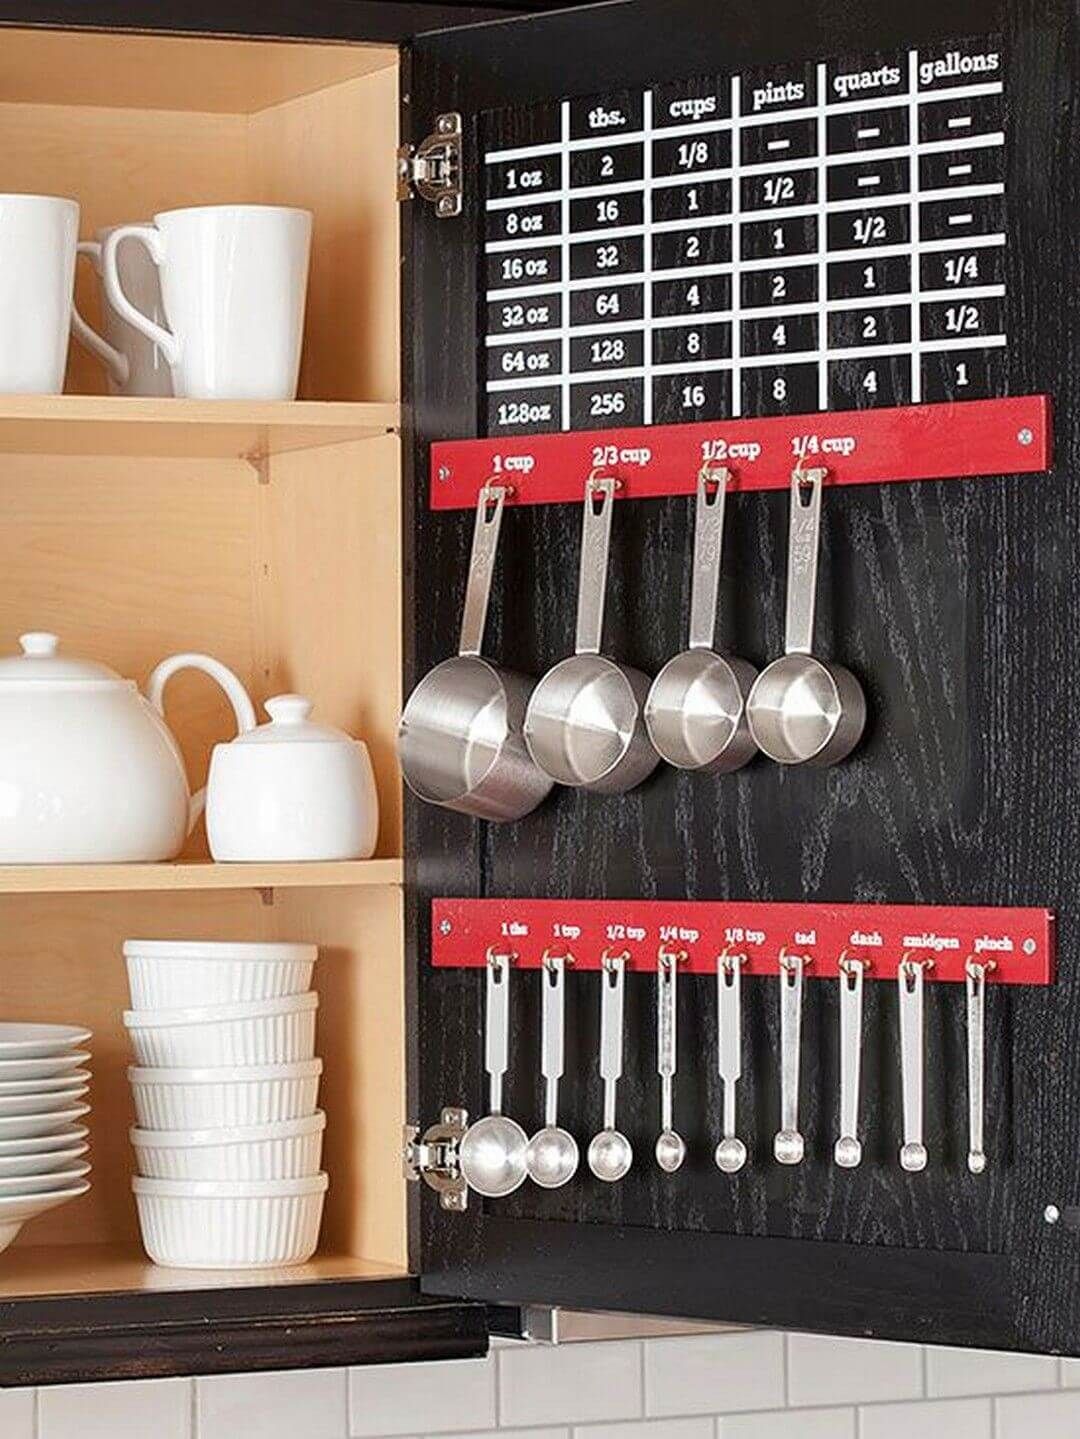 Wonderful Cheap Organization Ideas For The Cupboards